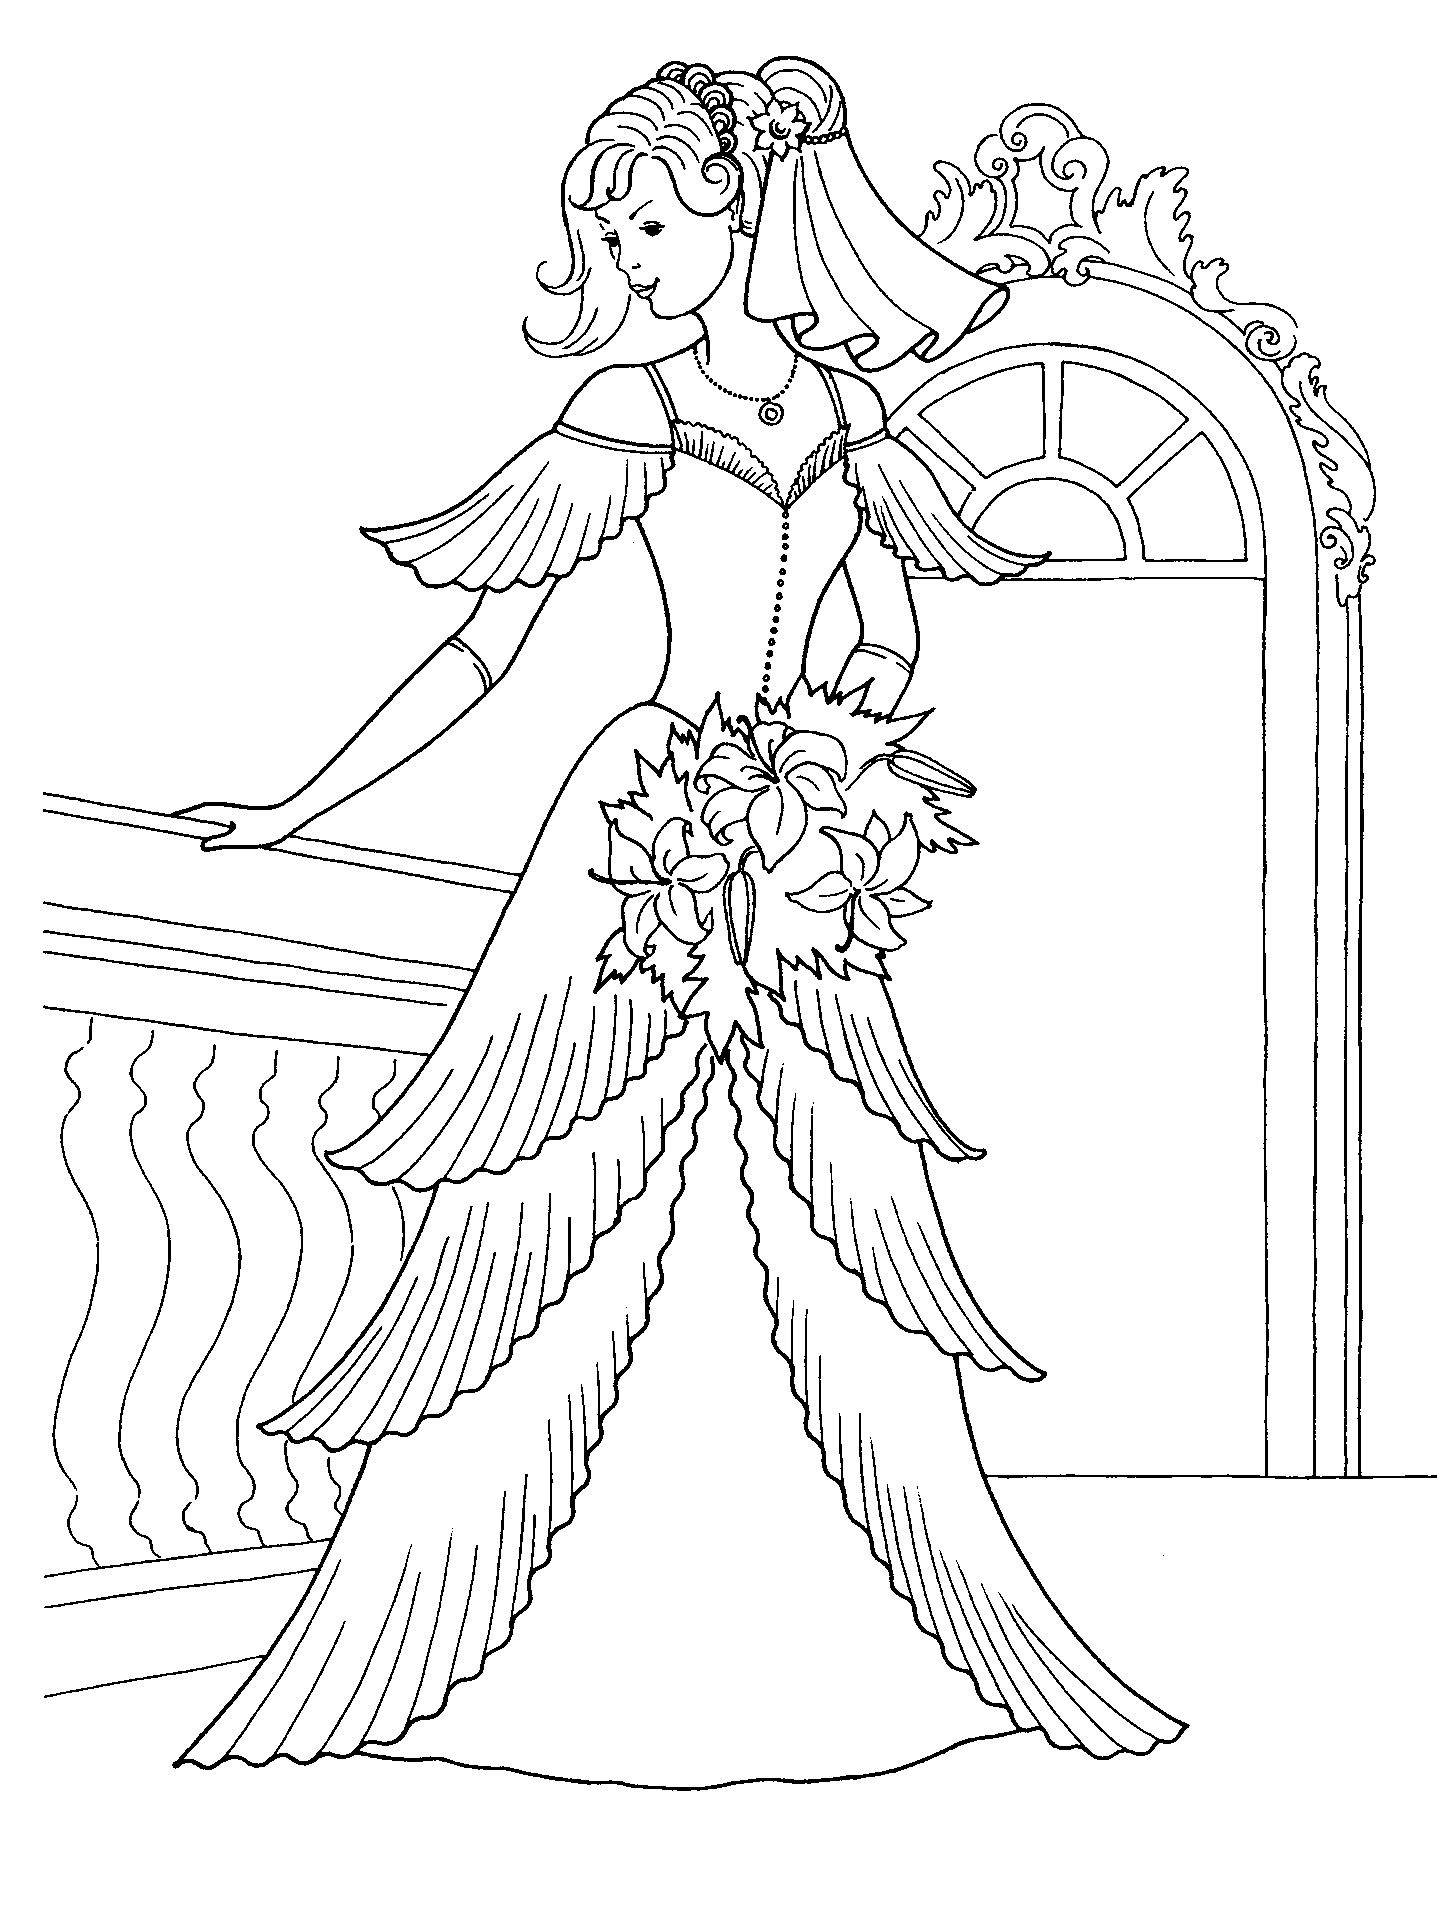 Princess Pictures Coloring Pages Coloring Pages Princess Dress Coloring Pages Free Coloring Sheets